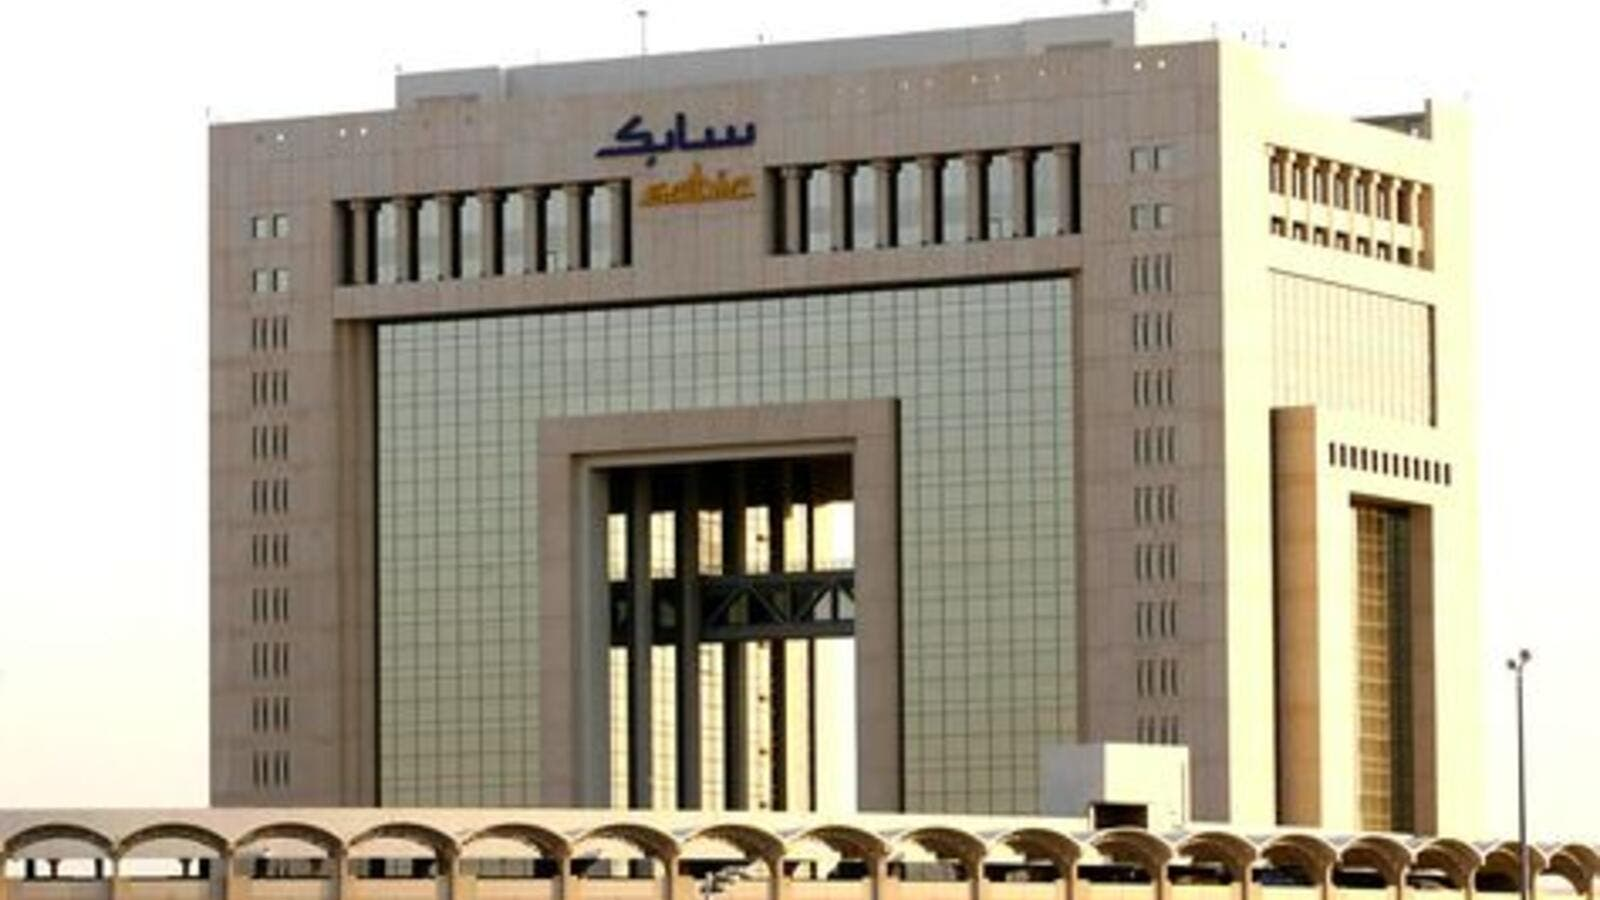 On average, SABIC files a new application every 18 hours, each based on the work of approximately four researchers, the statement added. The petrochemicals giant said that it filed 373 patent applications in 2013 and applied for 159 applications in the first quarter of this year.